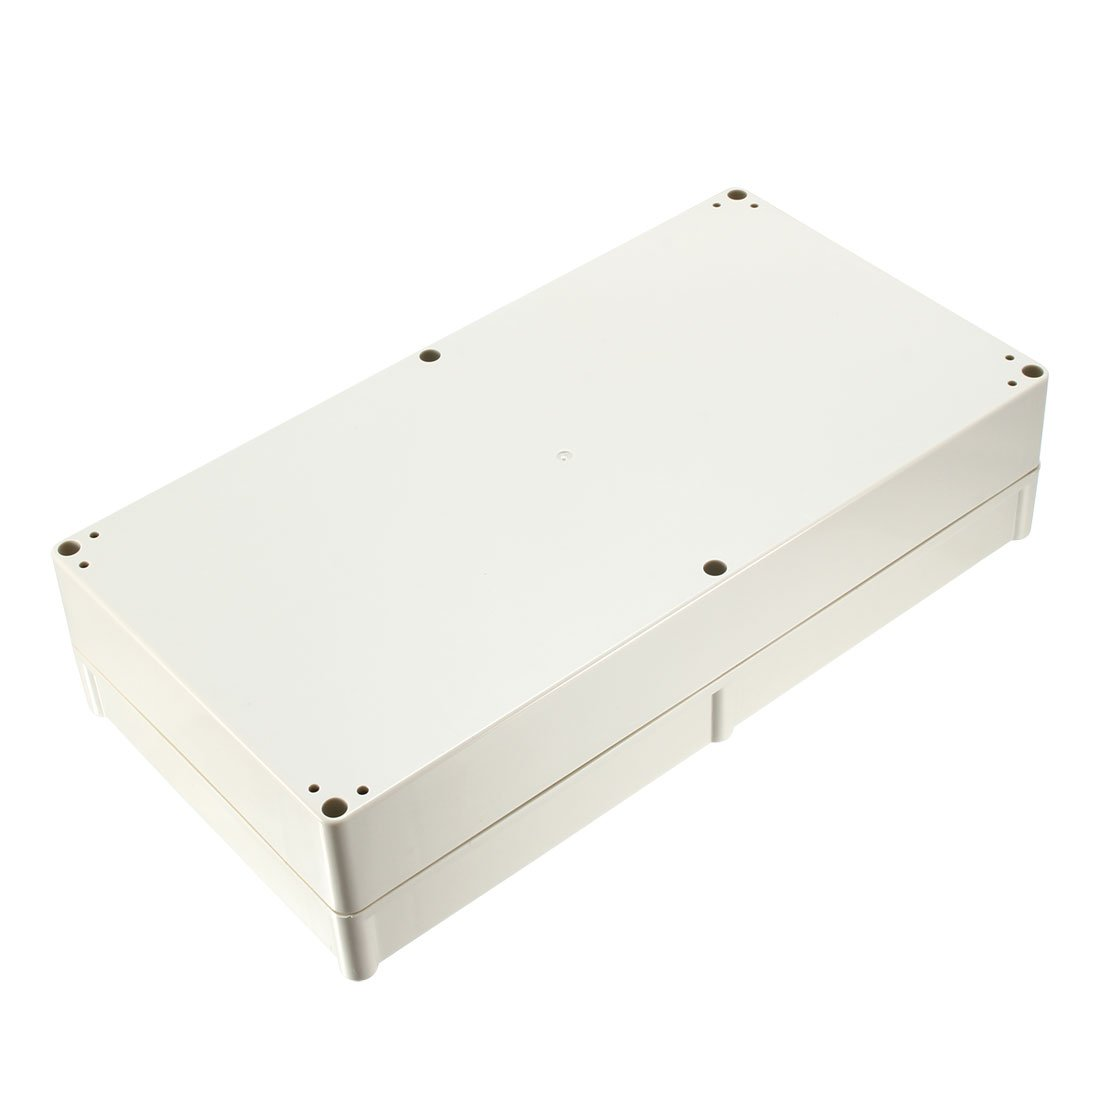 sourcingmap 325x170x78mm Electronic Waterproof IP65 Sealed ABS Plastic DIY Junction Box Enclosure Case Gray